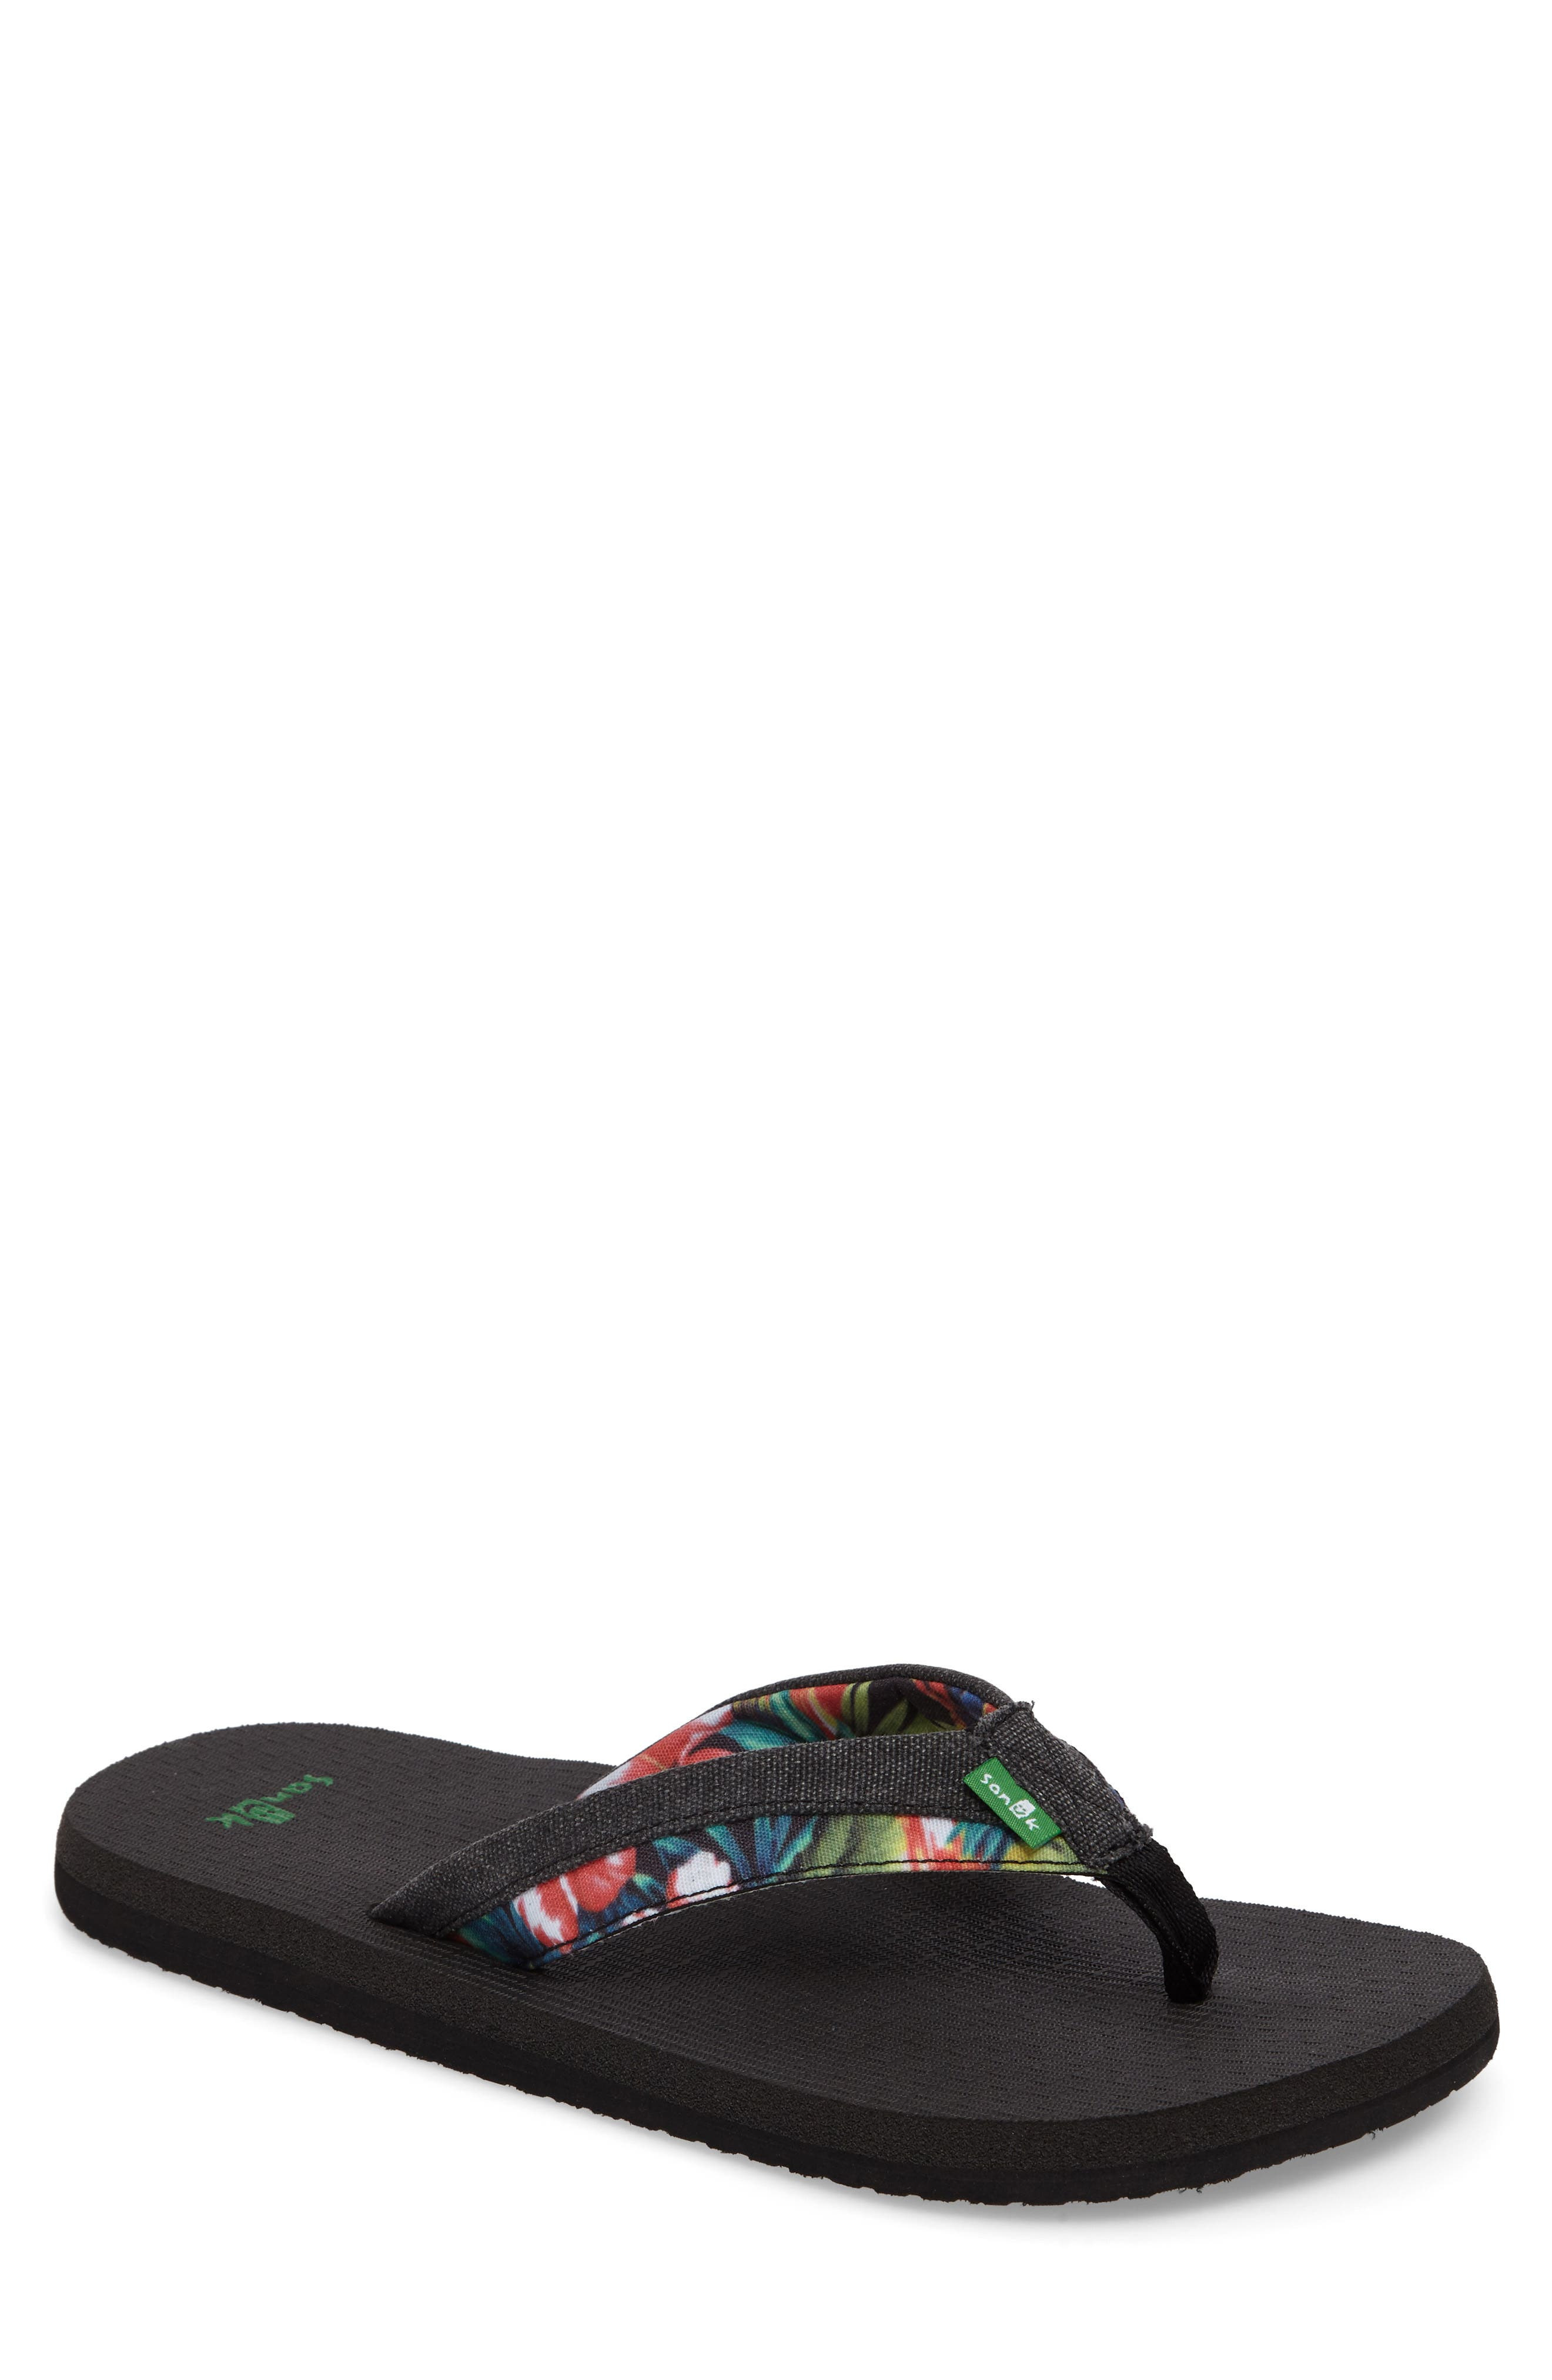 Alternate Image 1 Selected - Sanuk Beer Cozy Light Funk Flip Flop (Men)